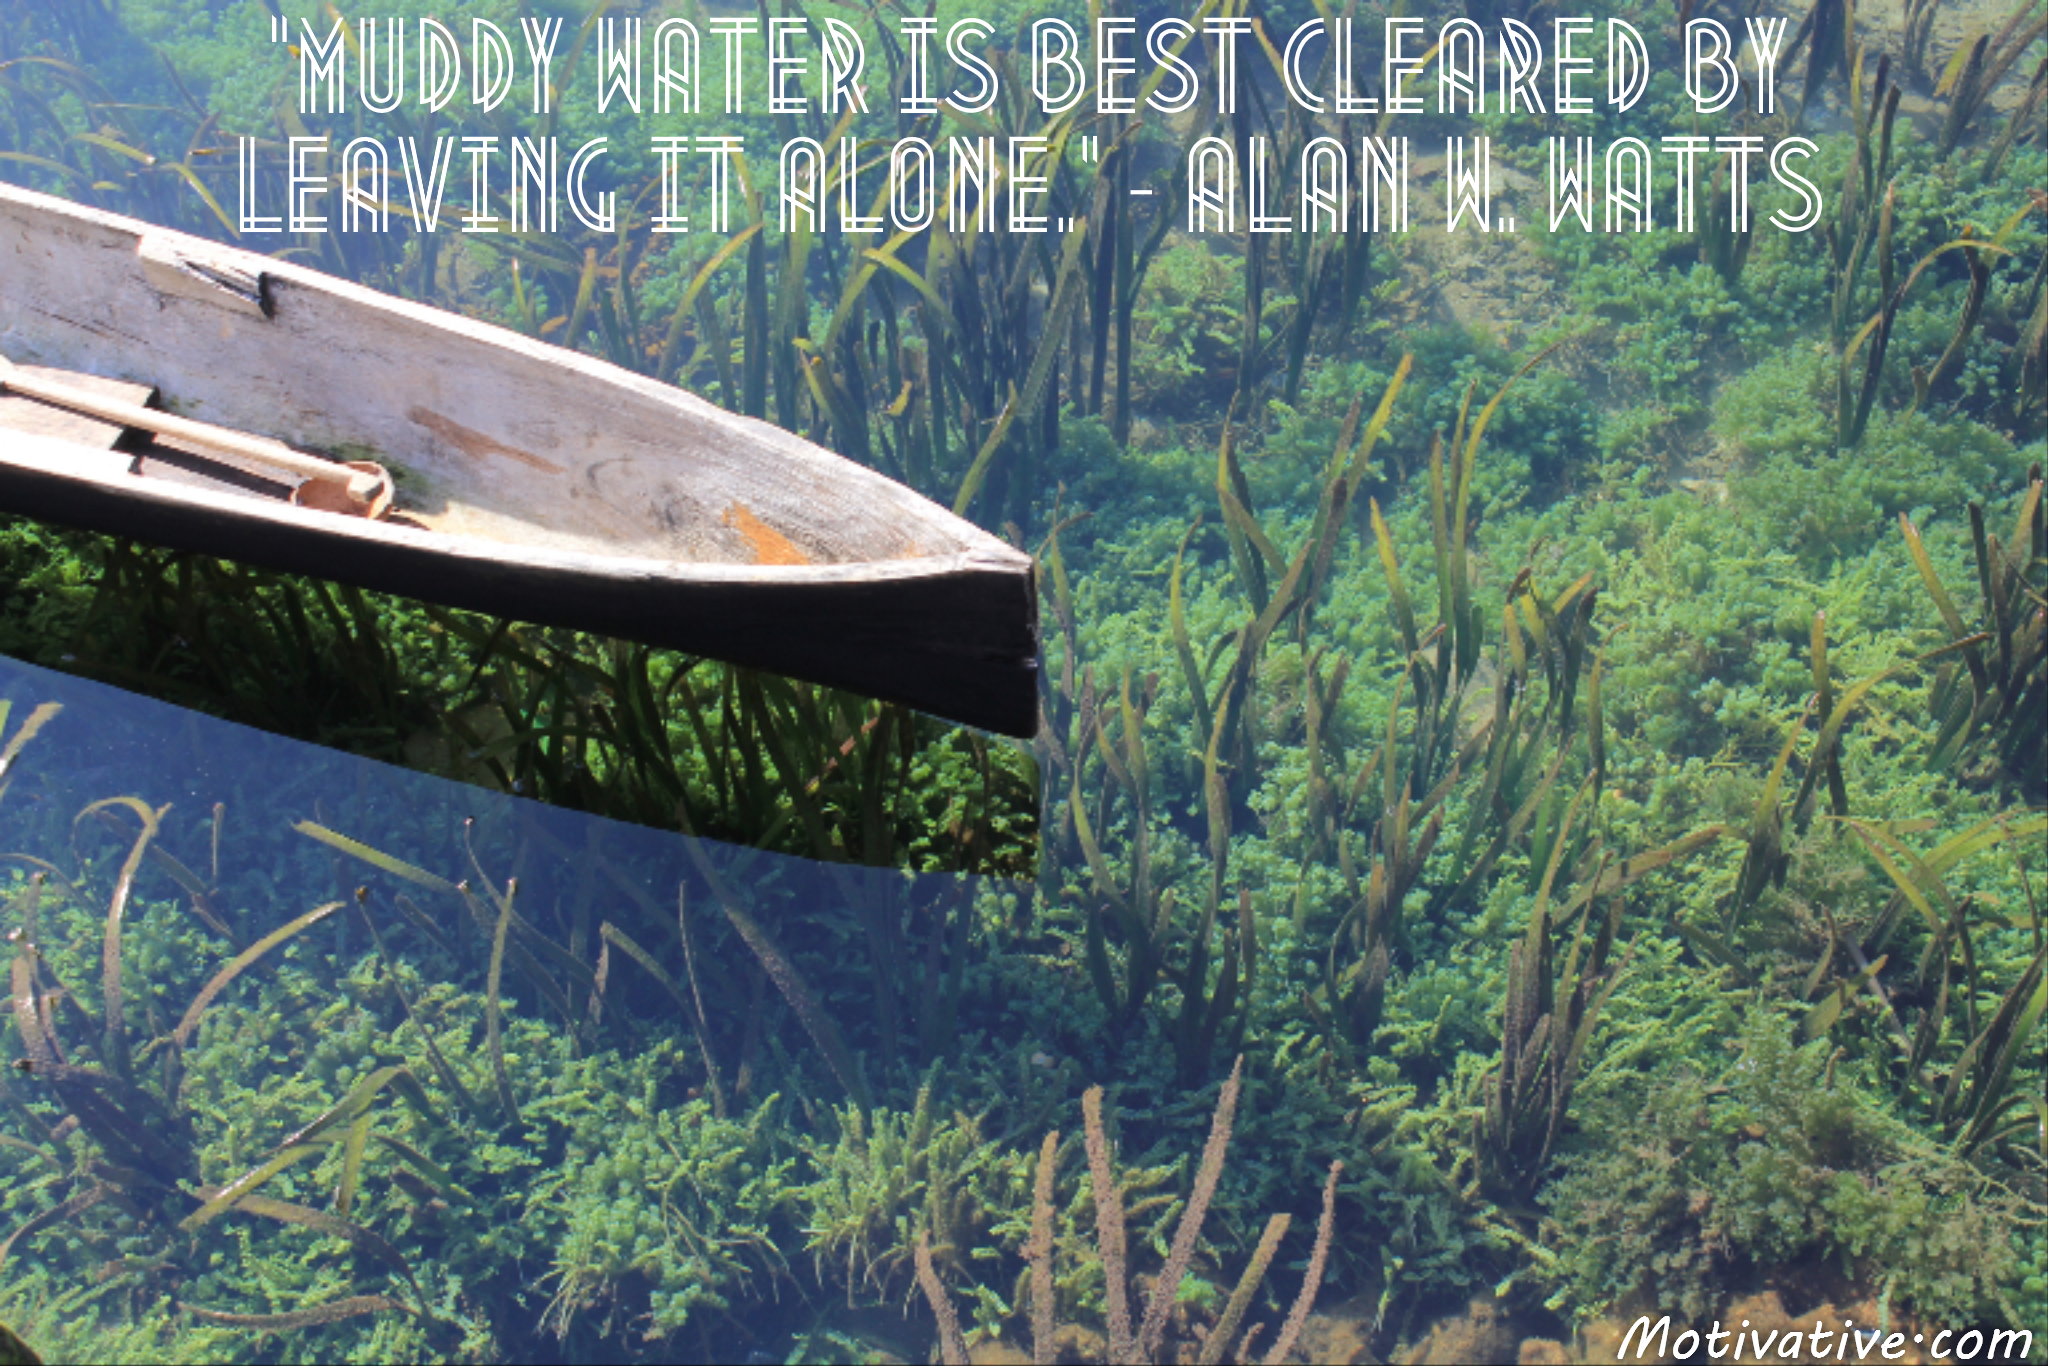 Muddy water is best cleared by leaving it alone. – Alan W. Watts